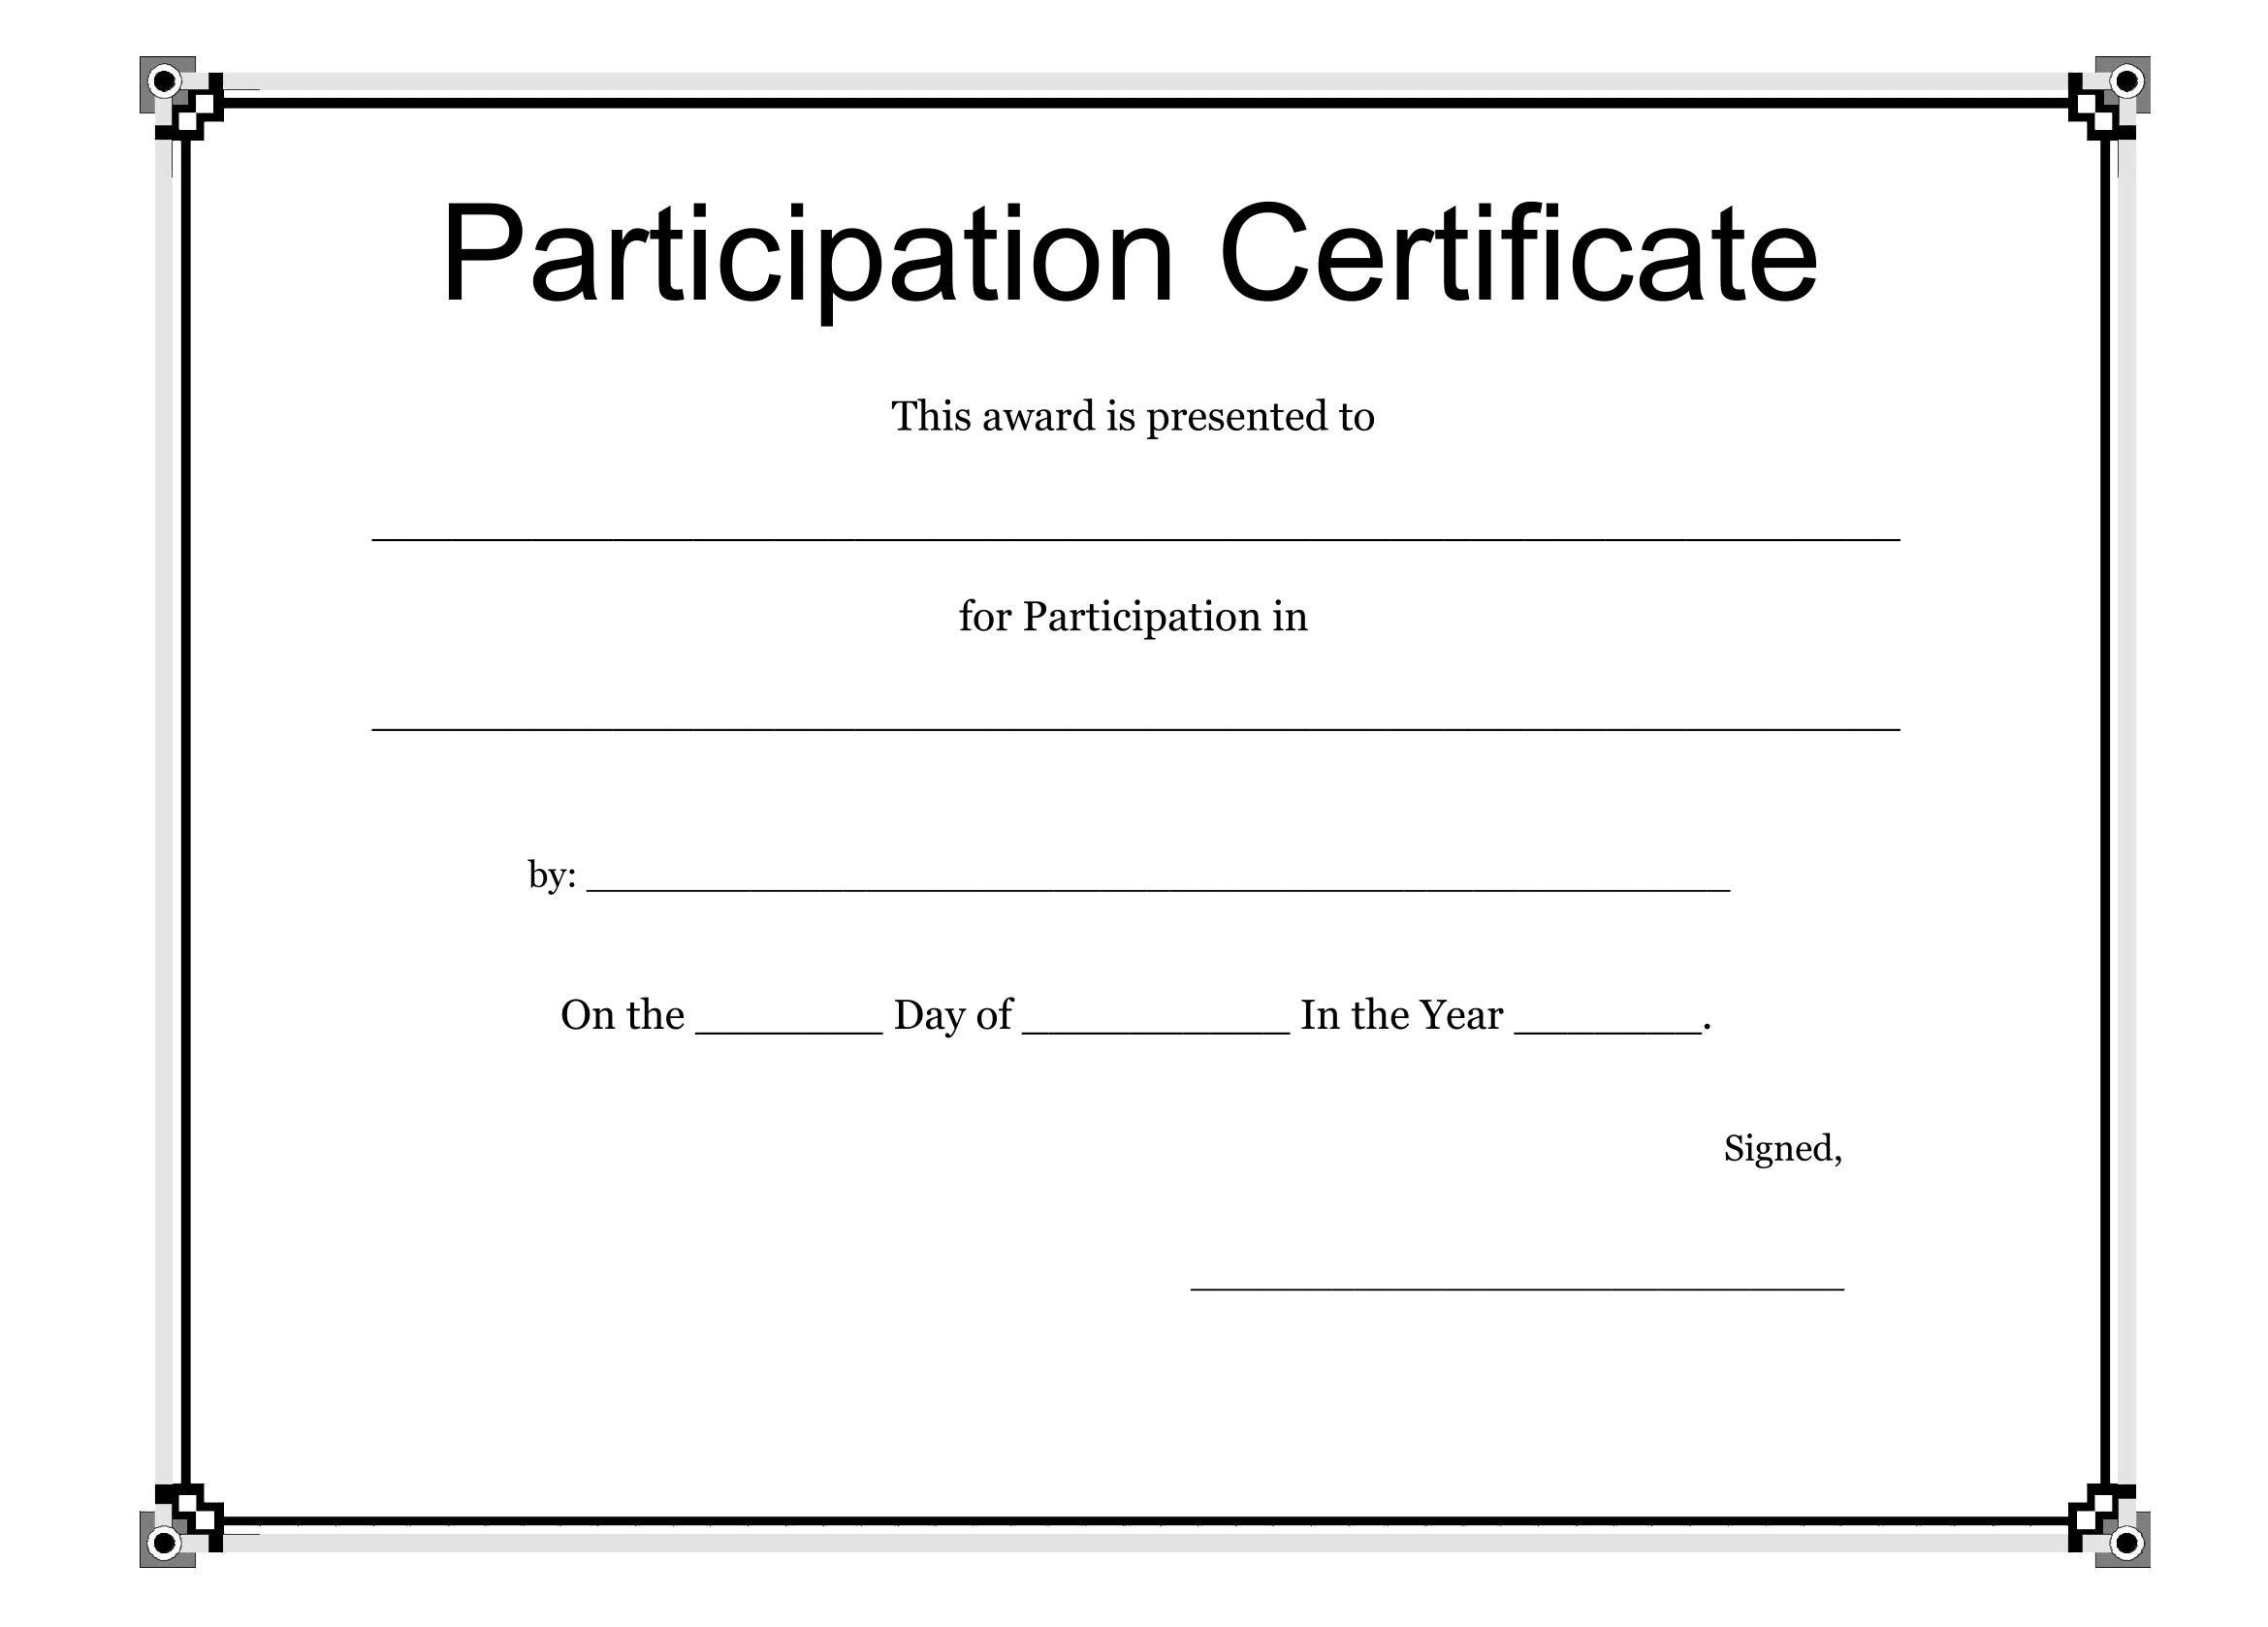 Participation certificate template free download for Award certificate template free download